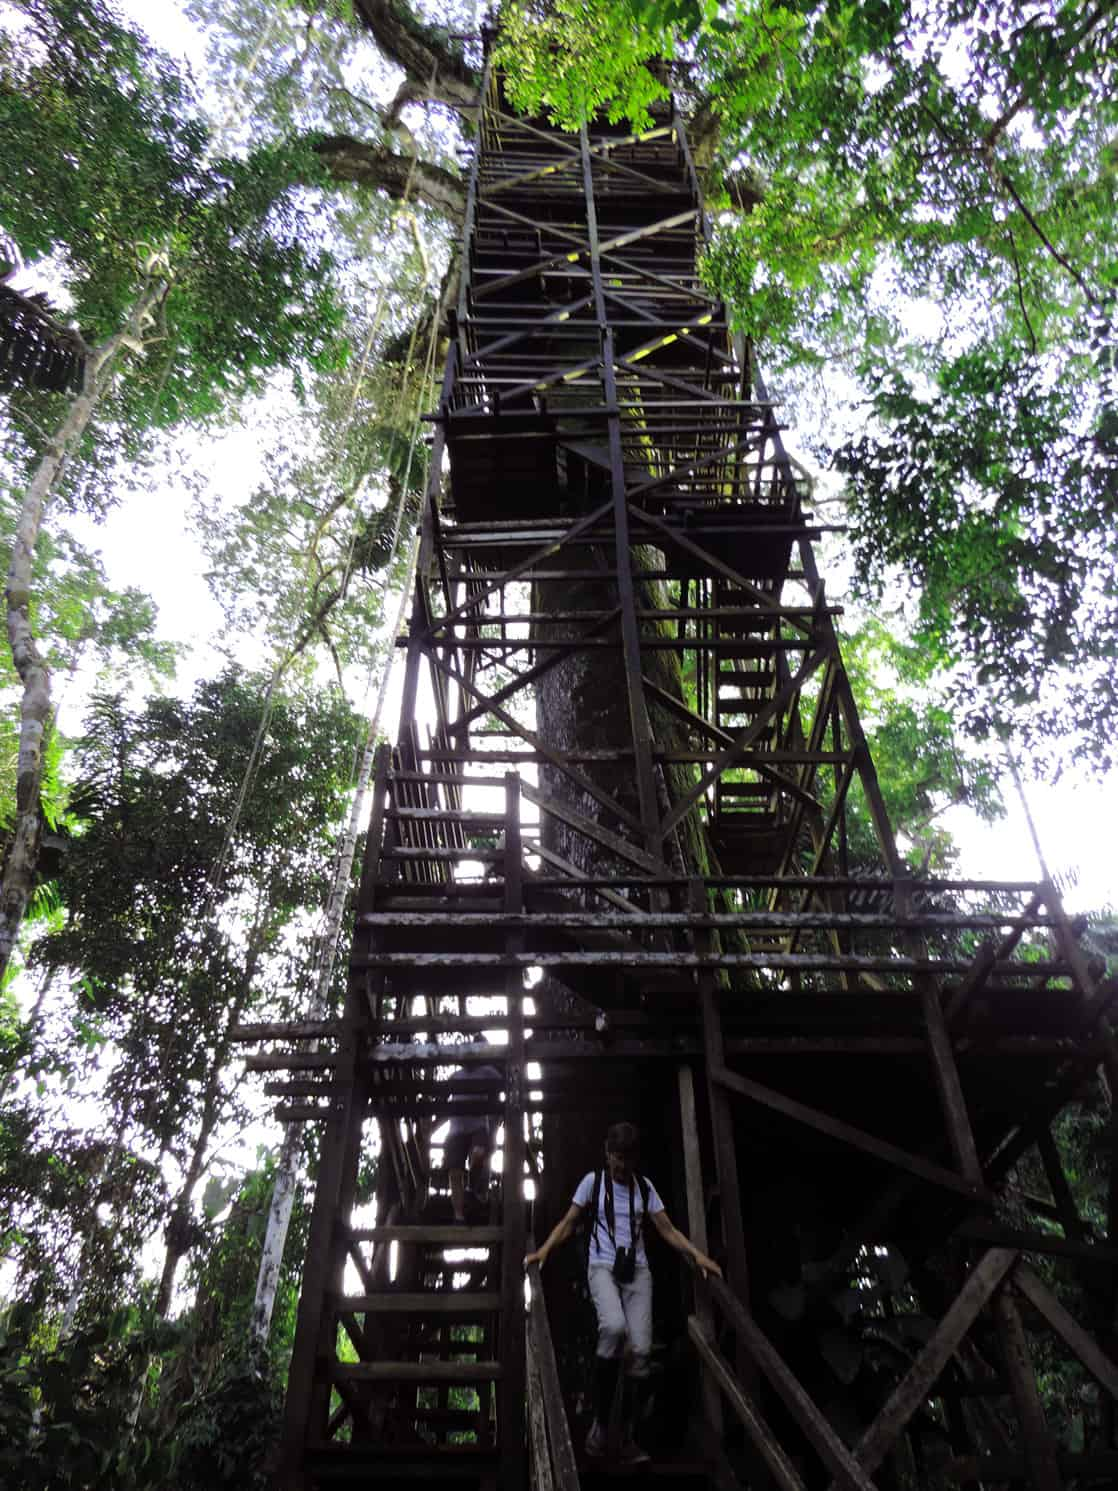 Wooden staircase to the suspended bridge with a Amazon traveler walking down in the jungle.